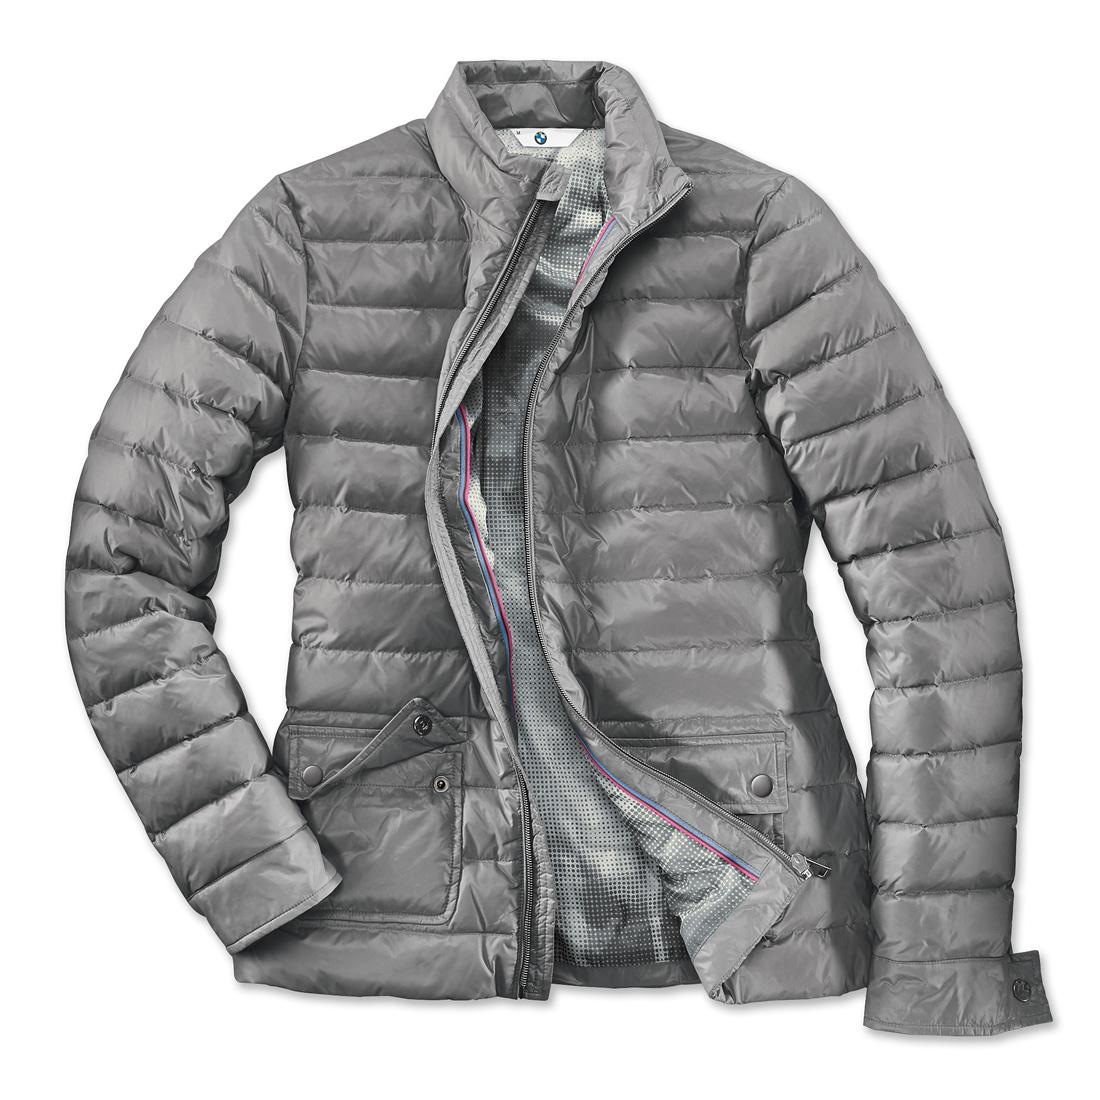 Grey Lightweight Jacket Jacket To